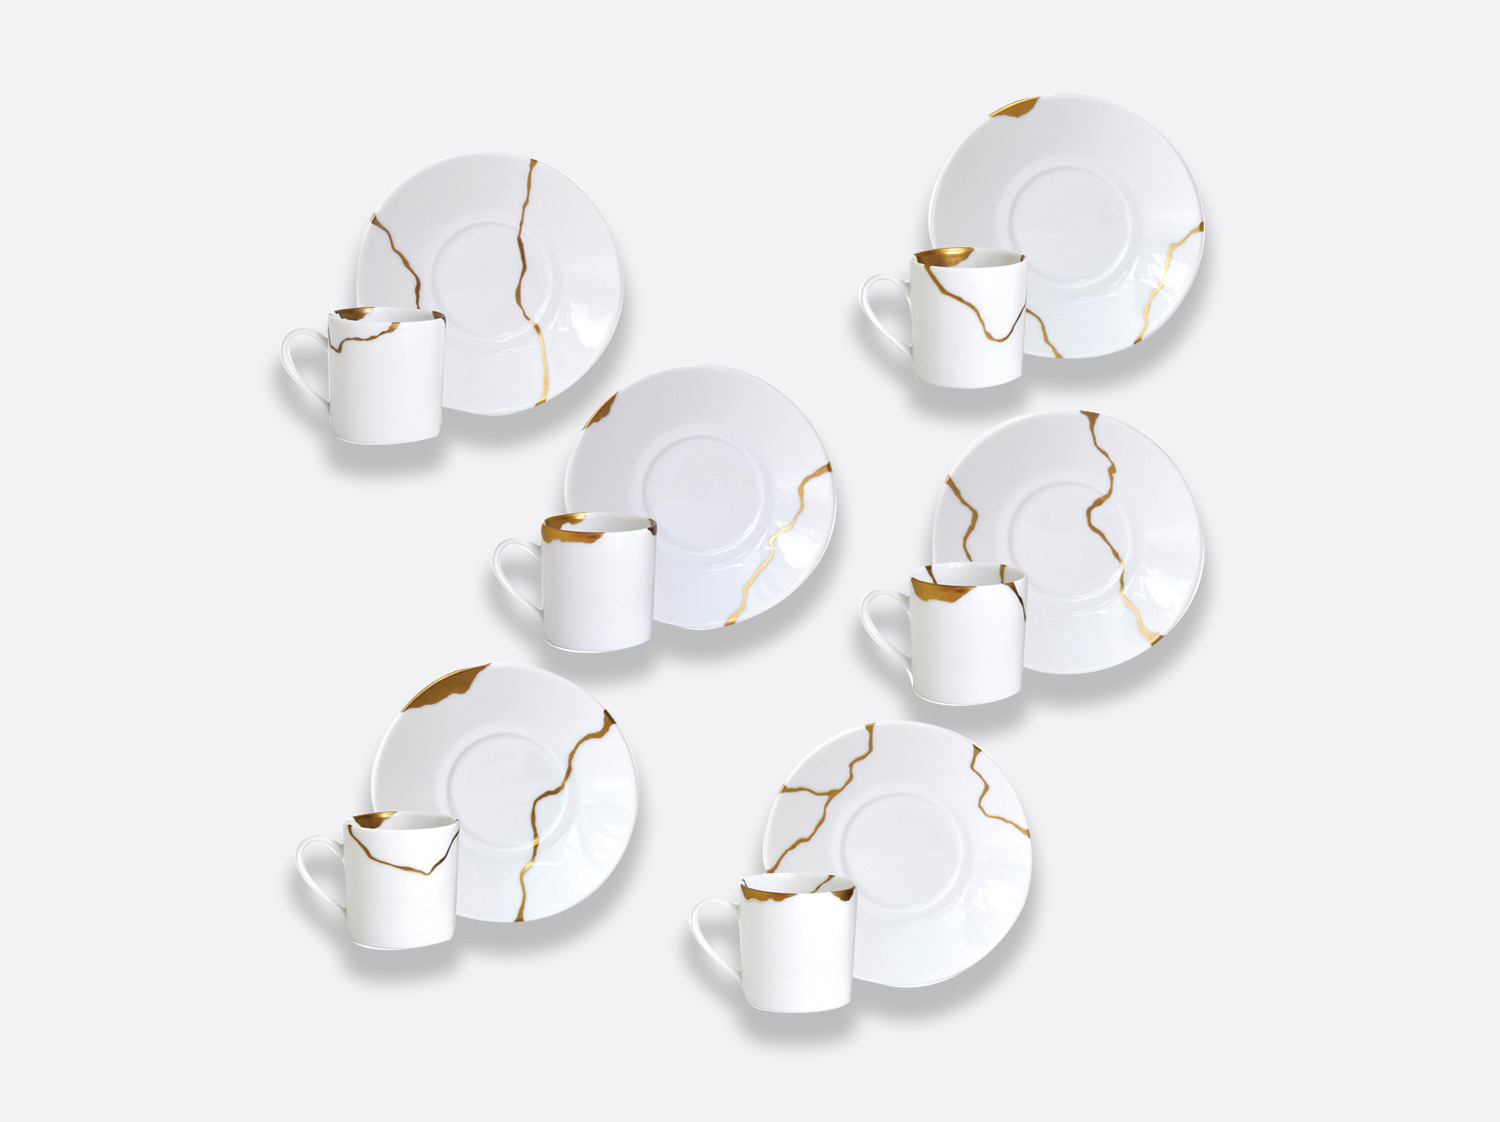 Coffret de 6 tasses et soucoupes à café assorties en porcelaine de la collection Kintsugi Bernardaud